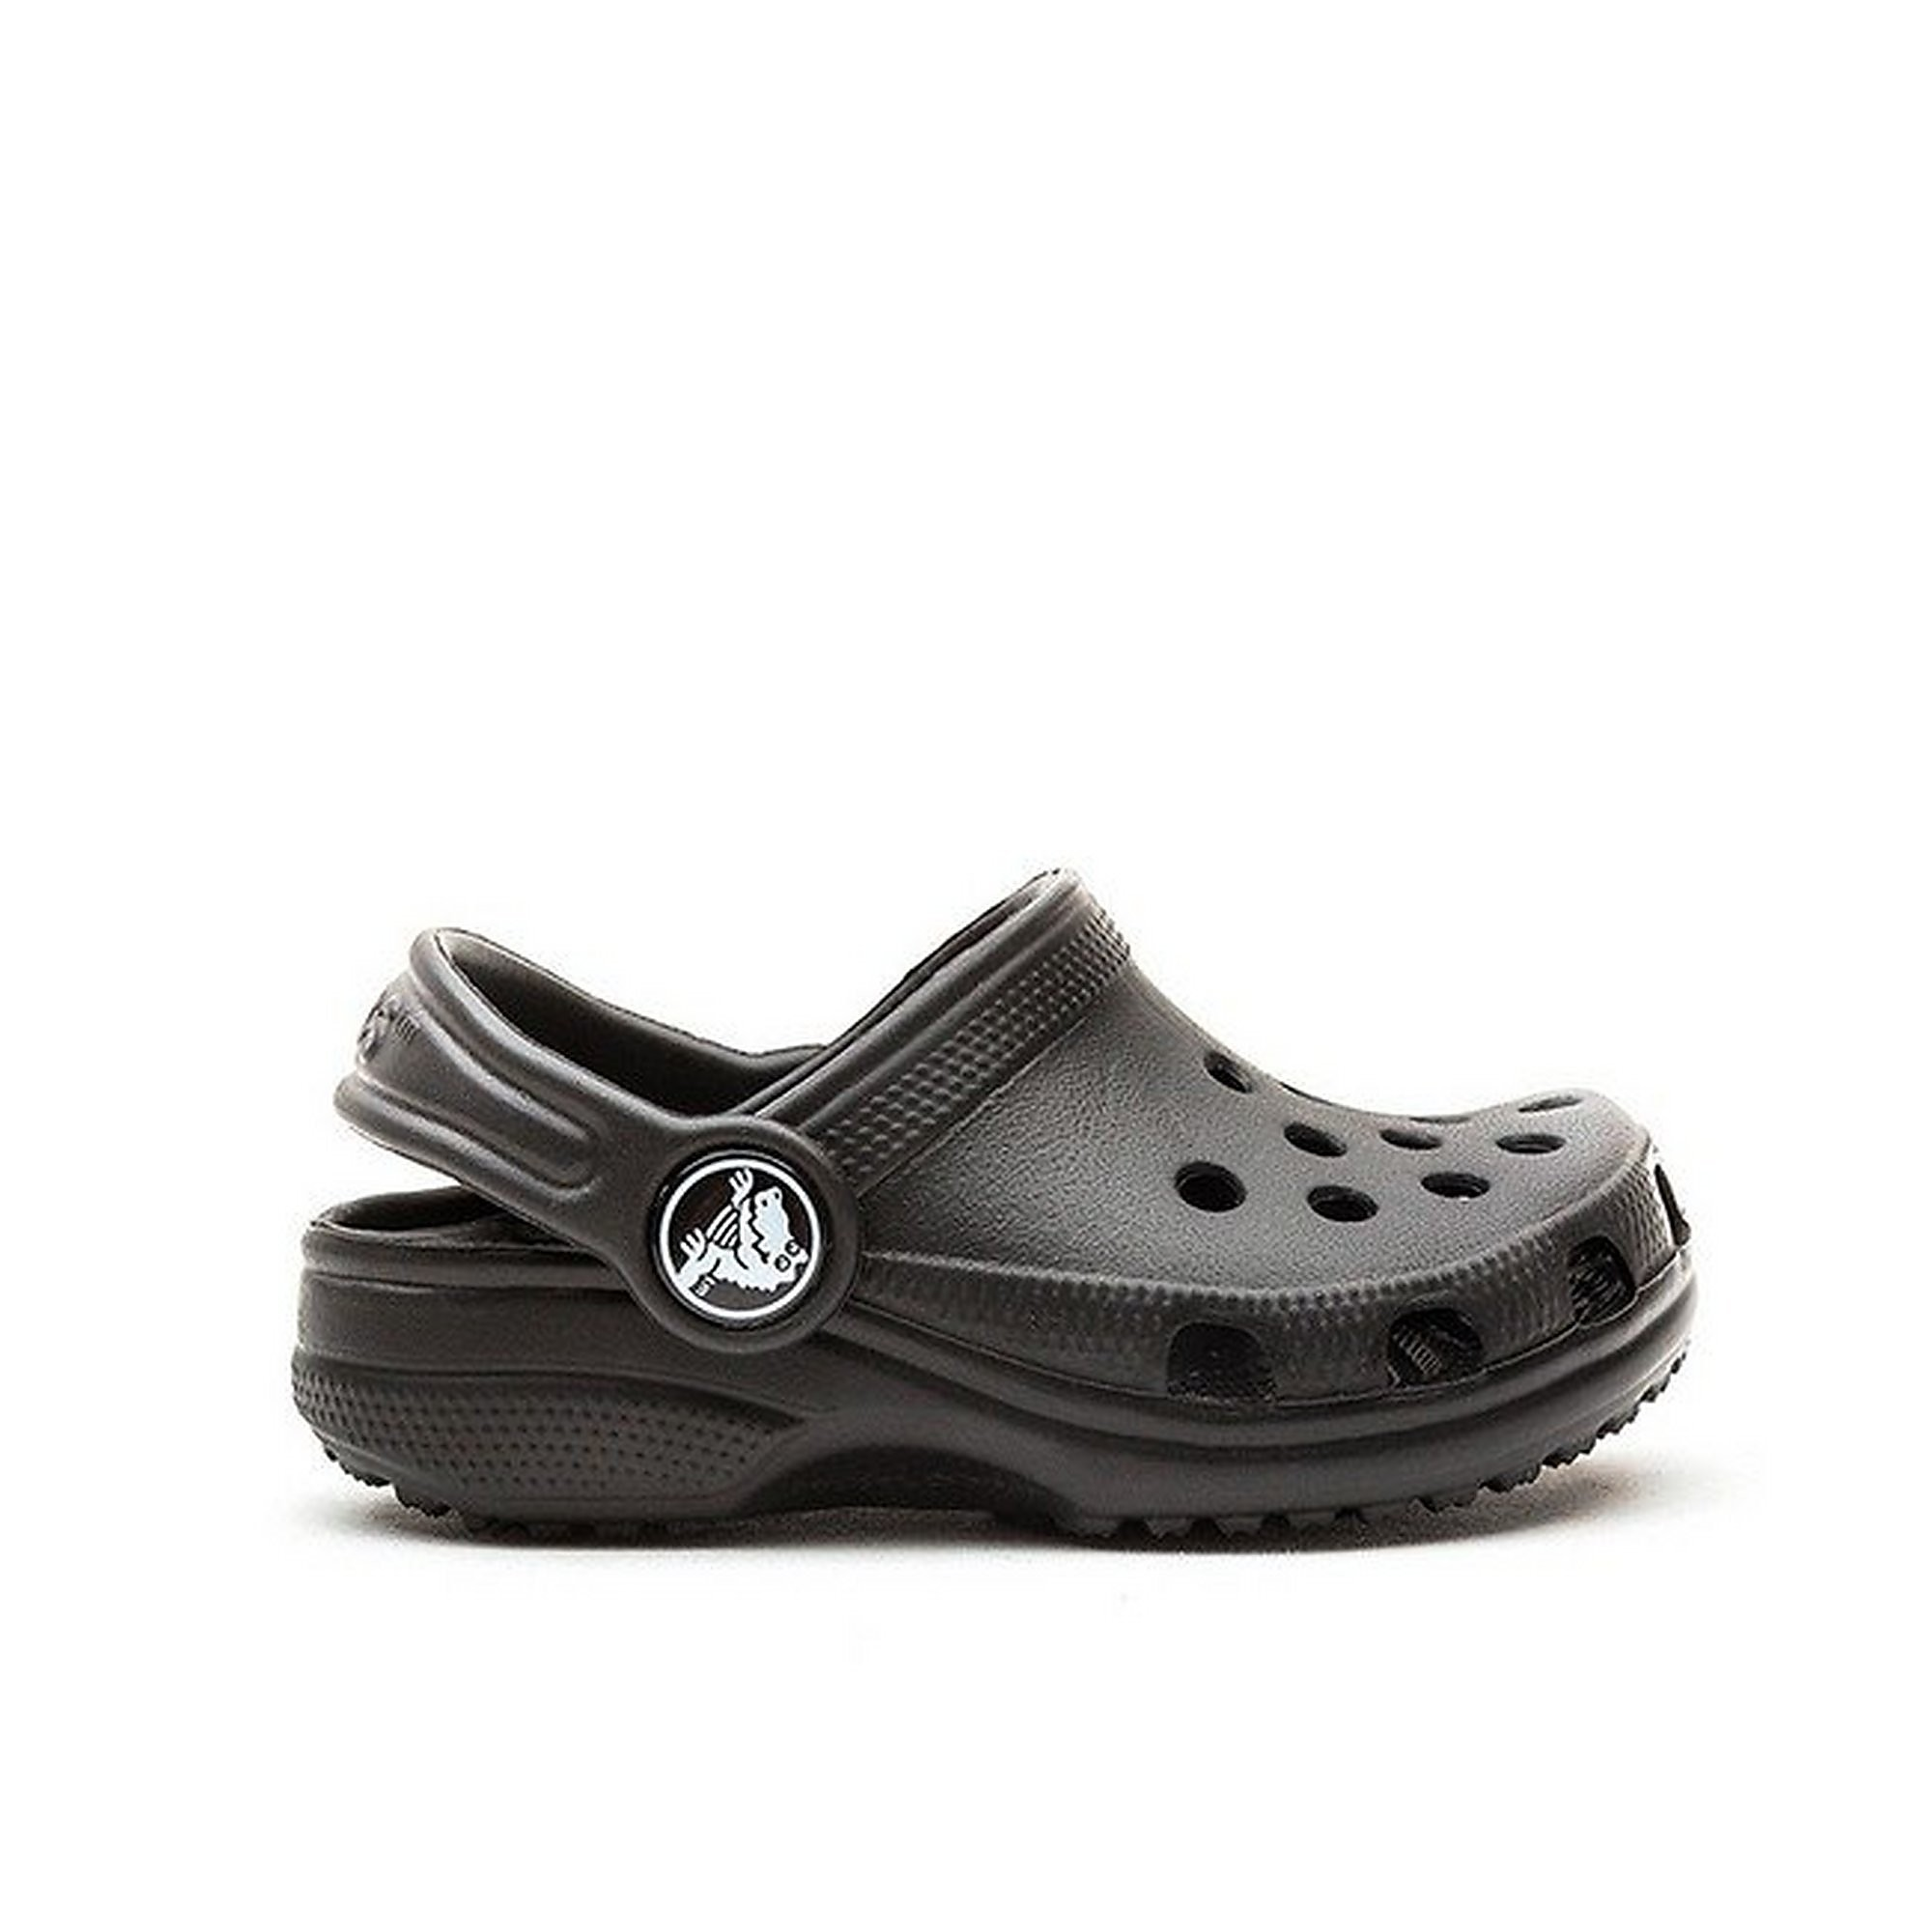 Crocs Juniors Classic Cayman Sandals - Black